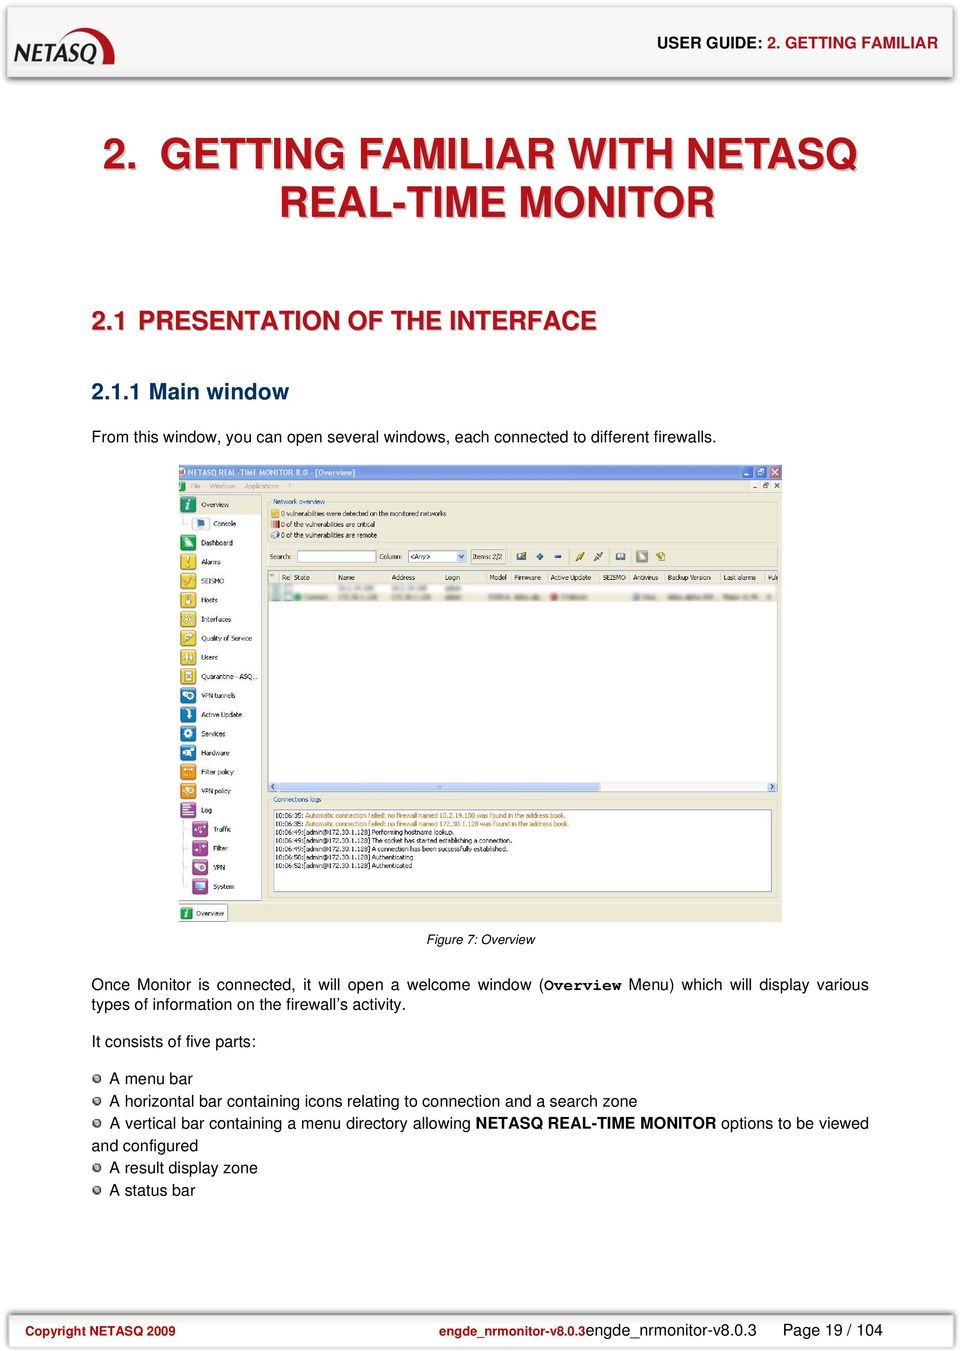 Figure 7: Overview Once Monitor is connected, it will open a welcome window (Overview Menu) which will display various types of information on the firewall s activity.